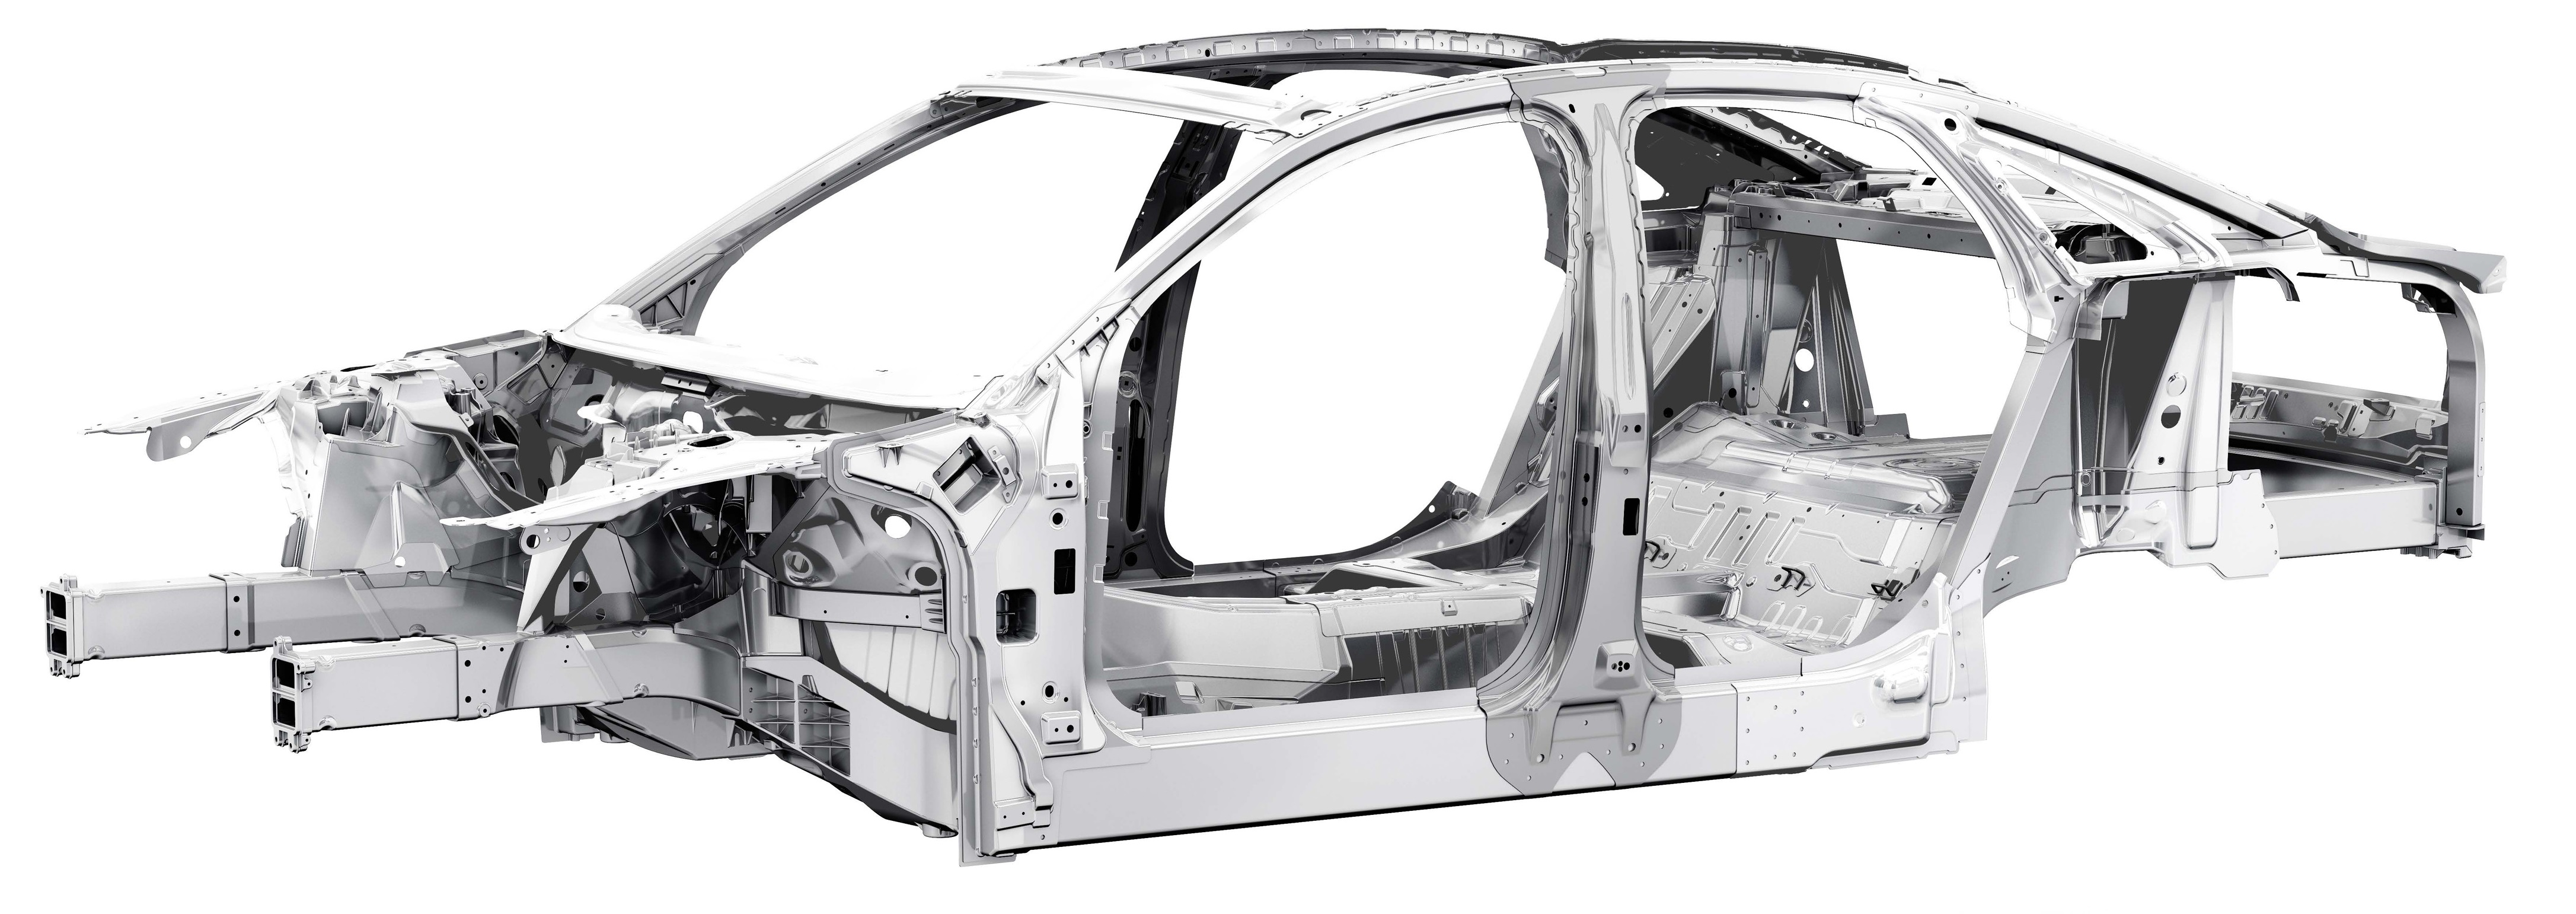 Audi A8 Body Structure Boron Extrication